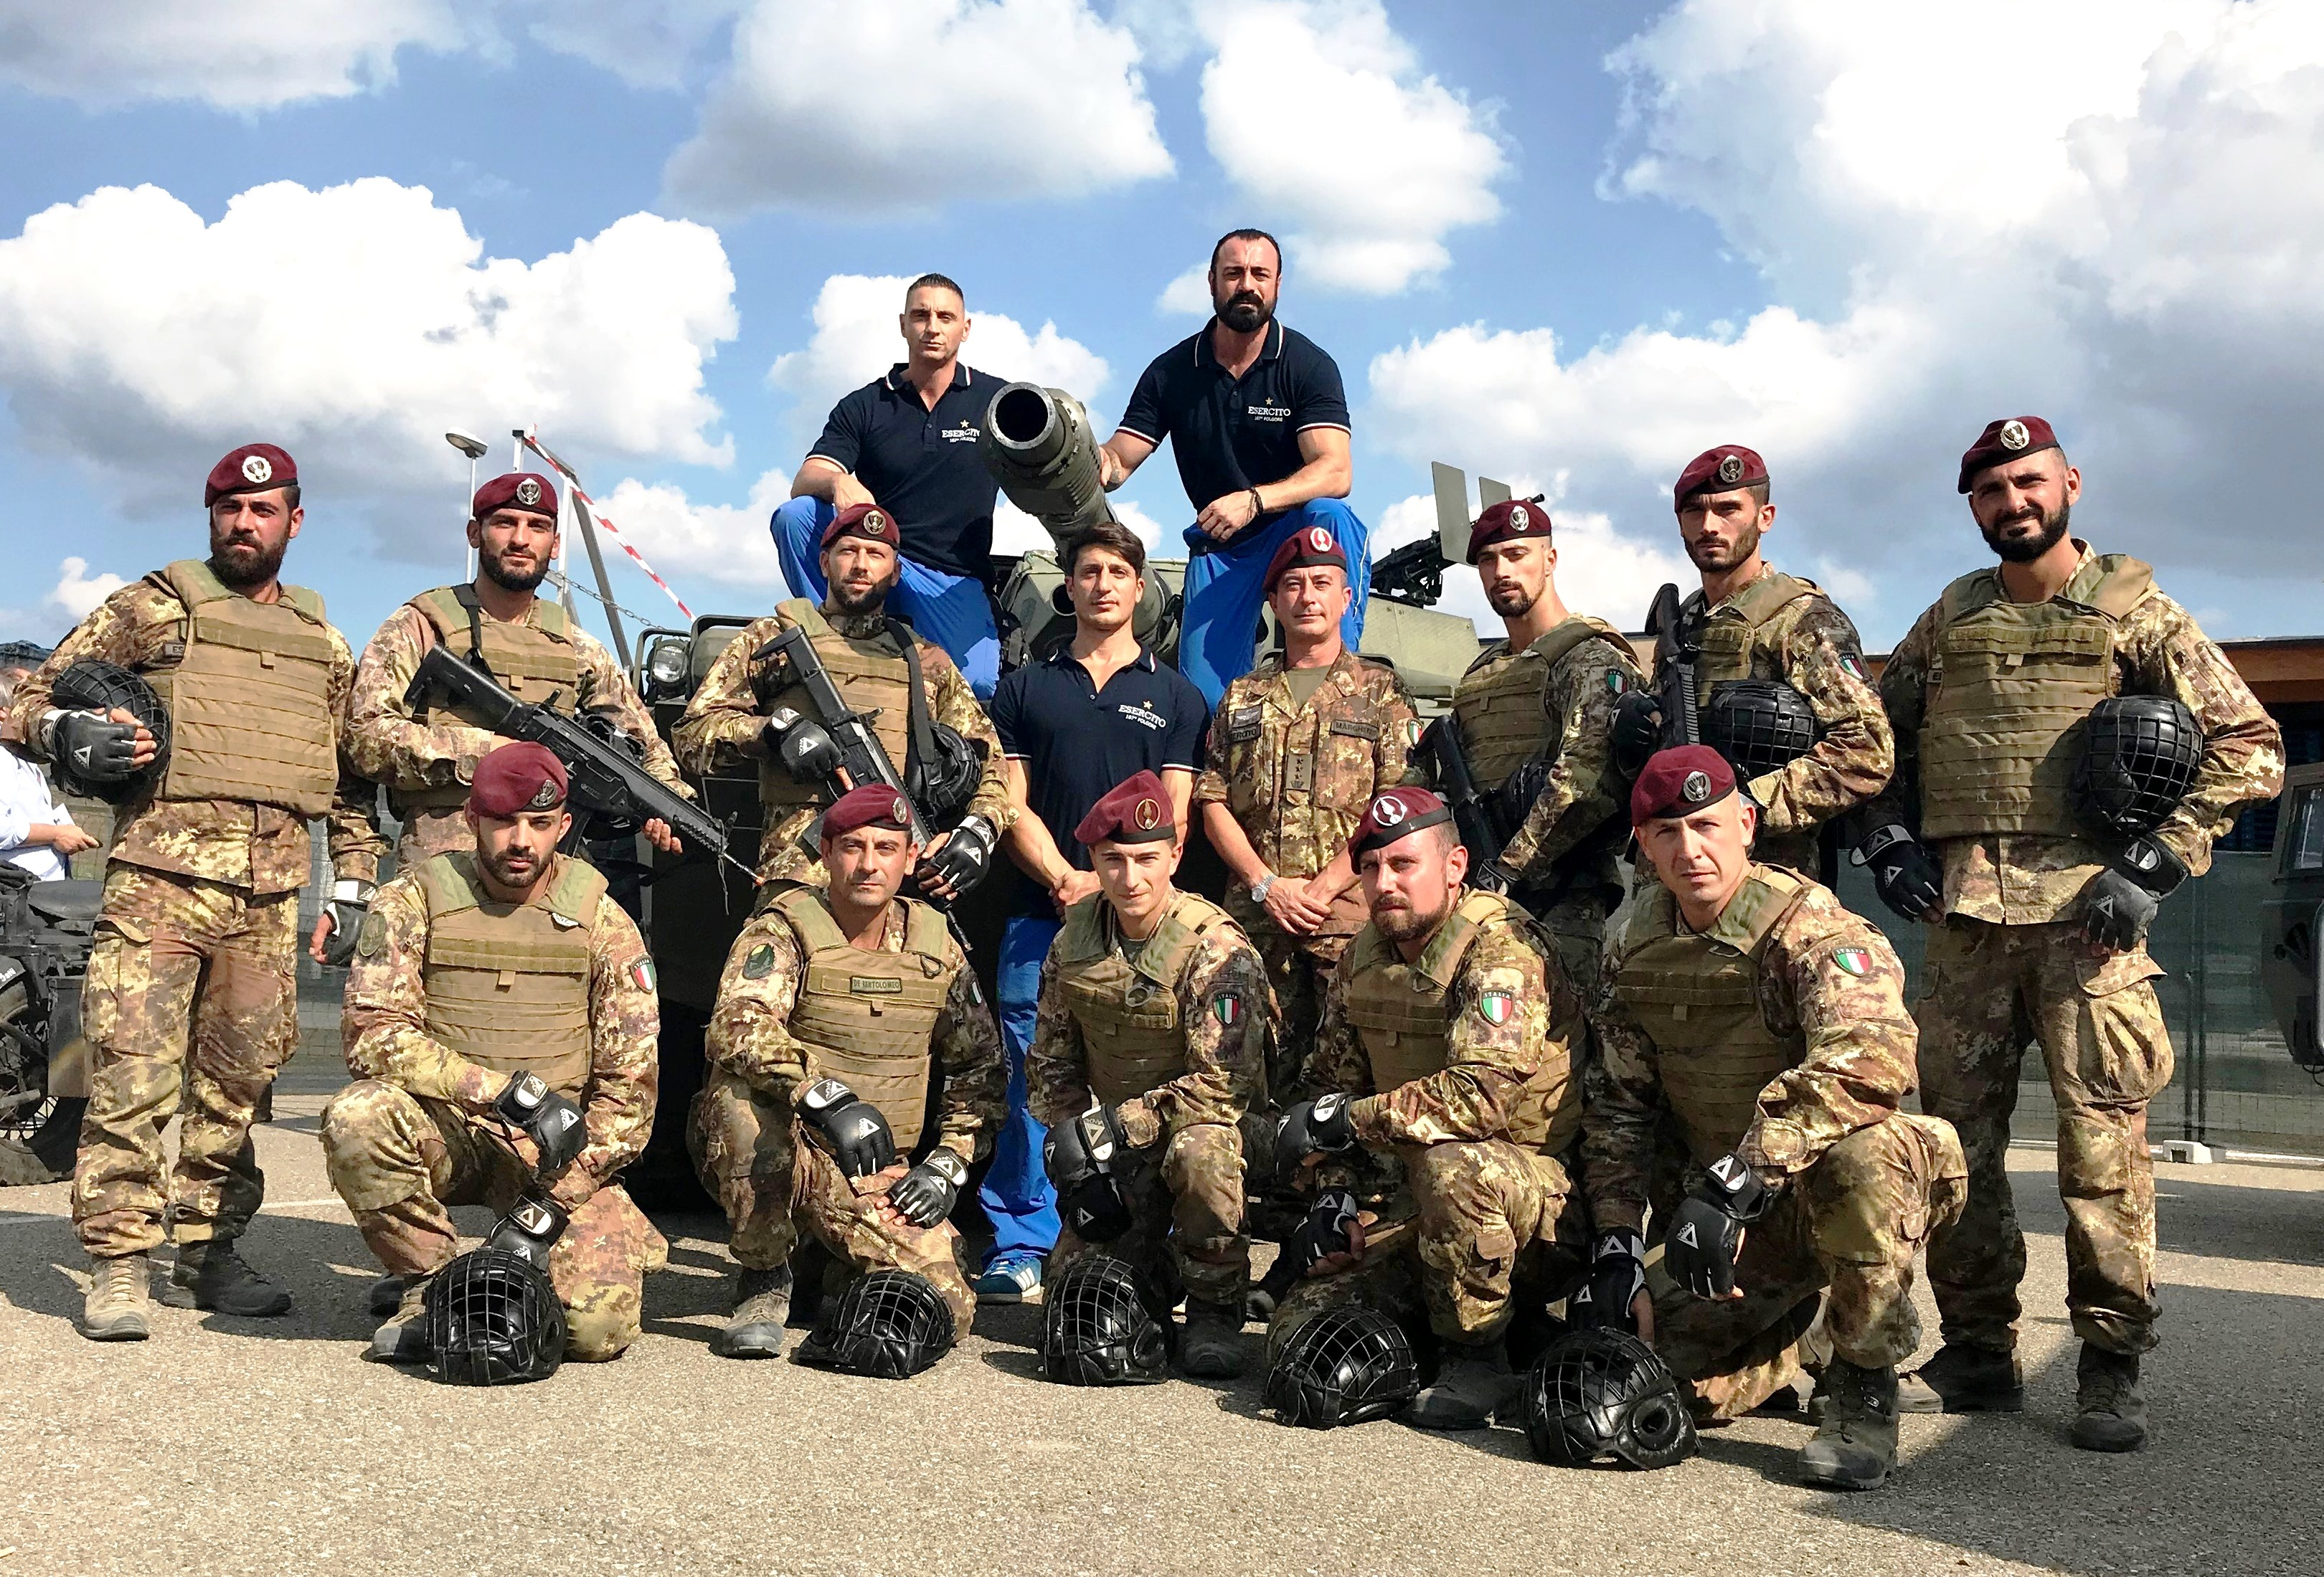 L'ESERCITO AL GAME FAIR 2018